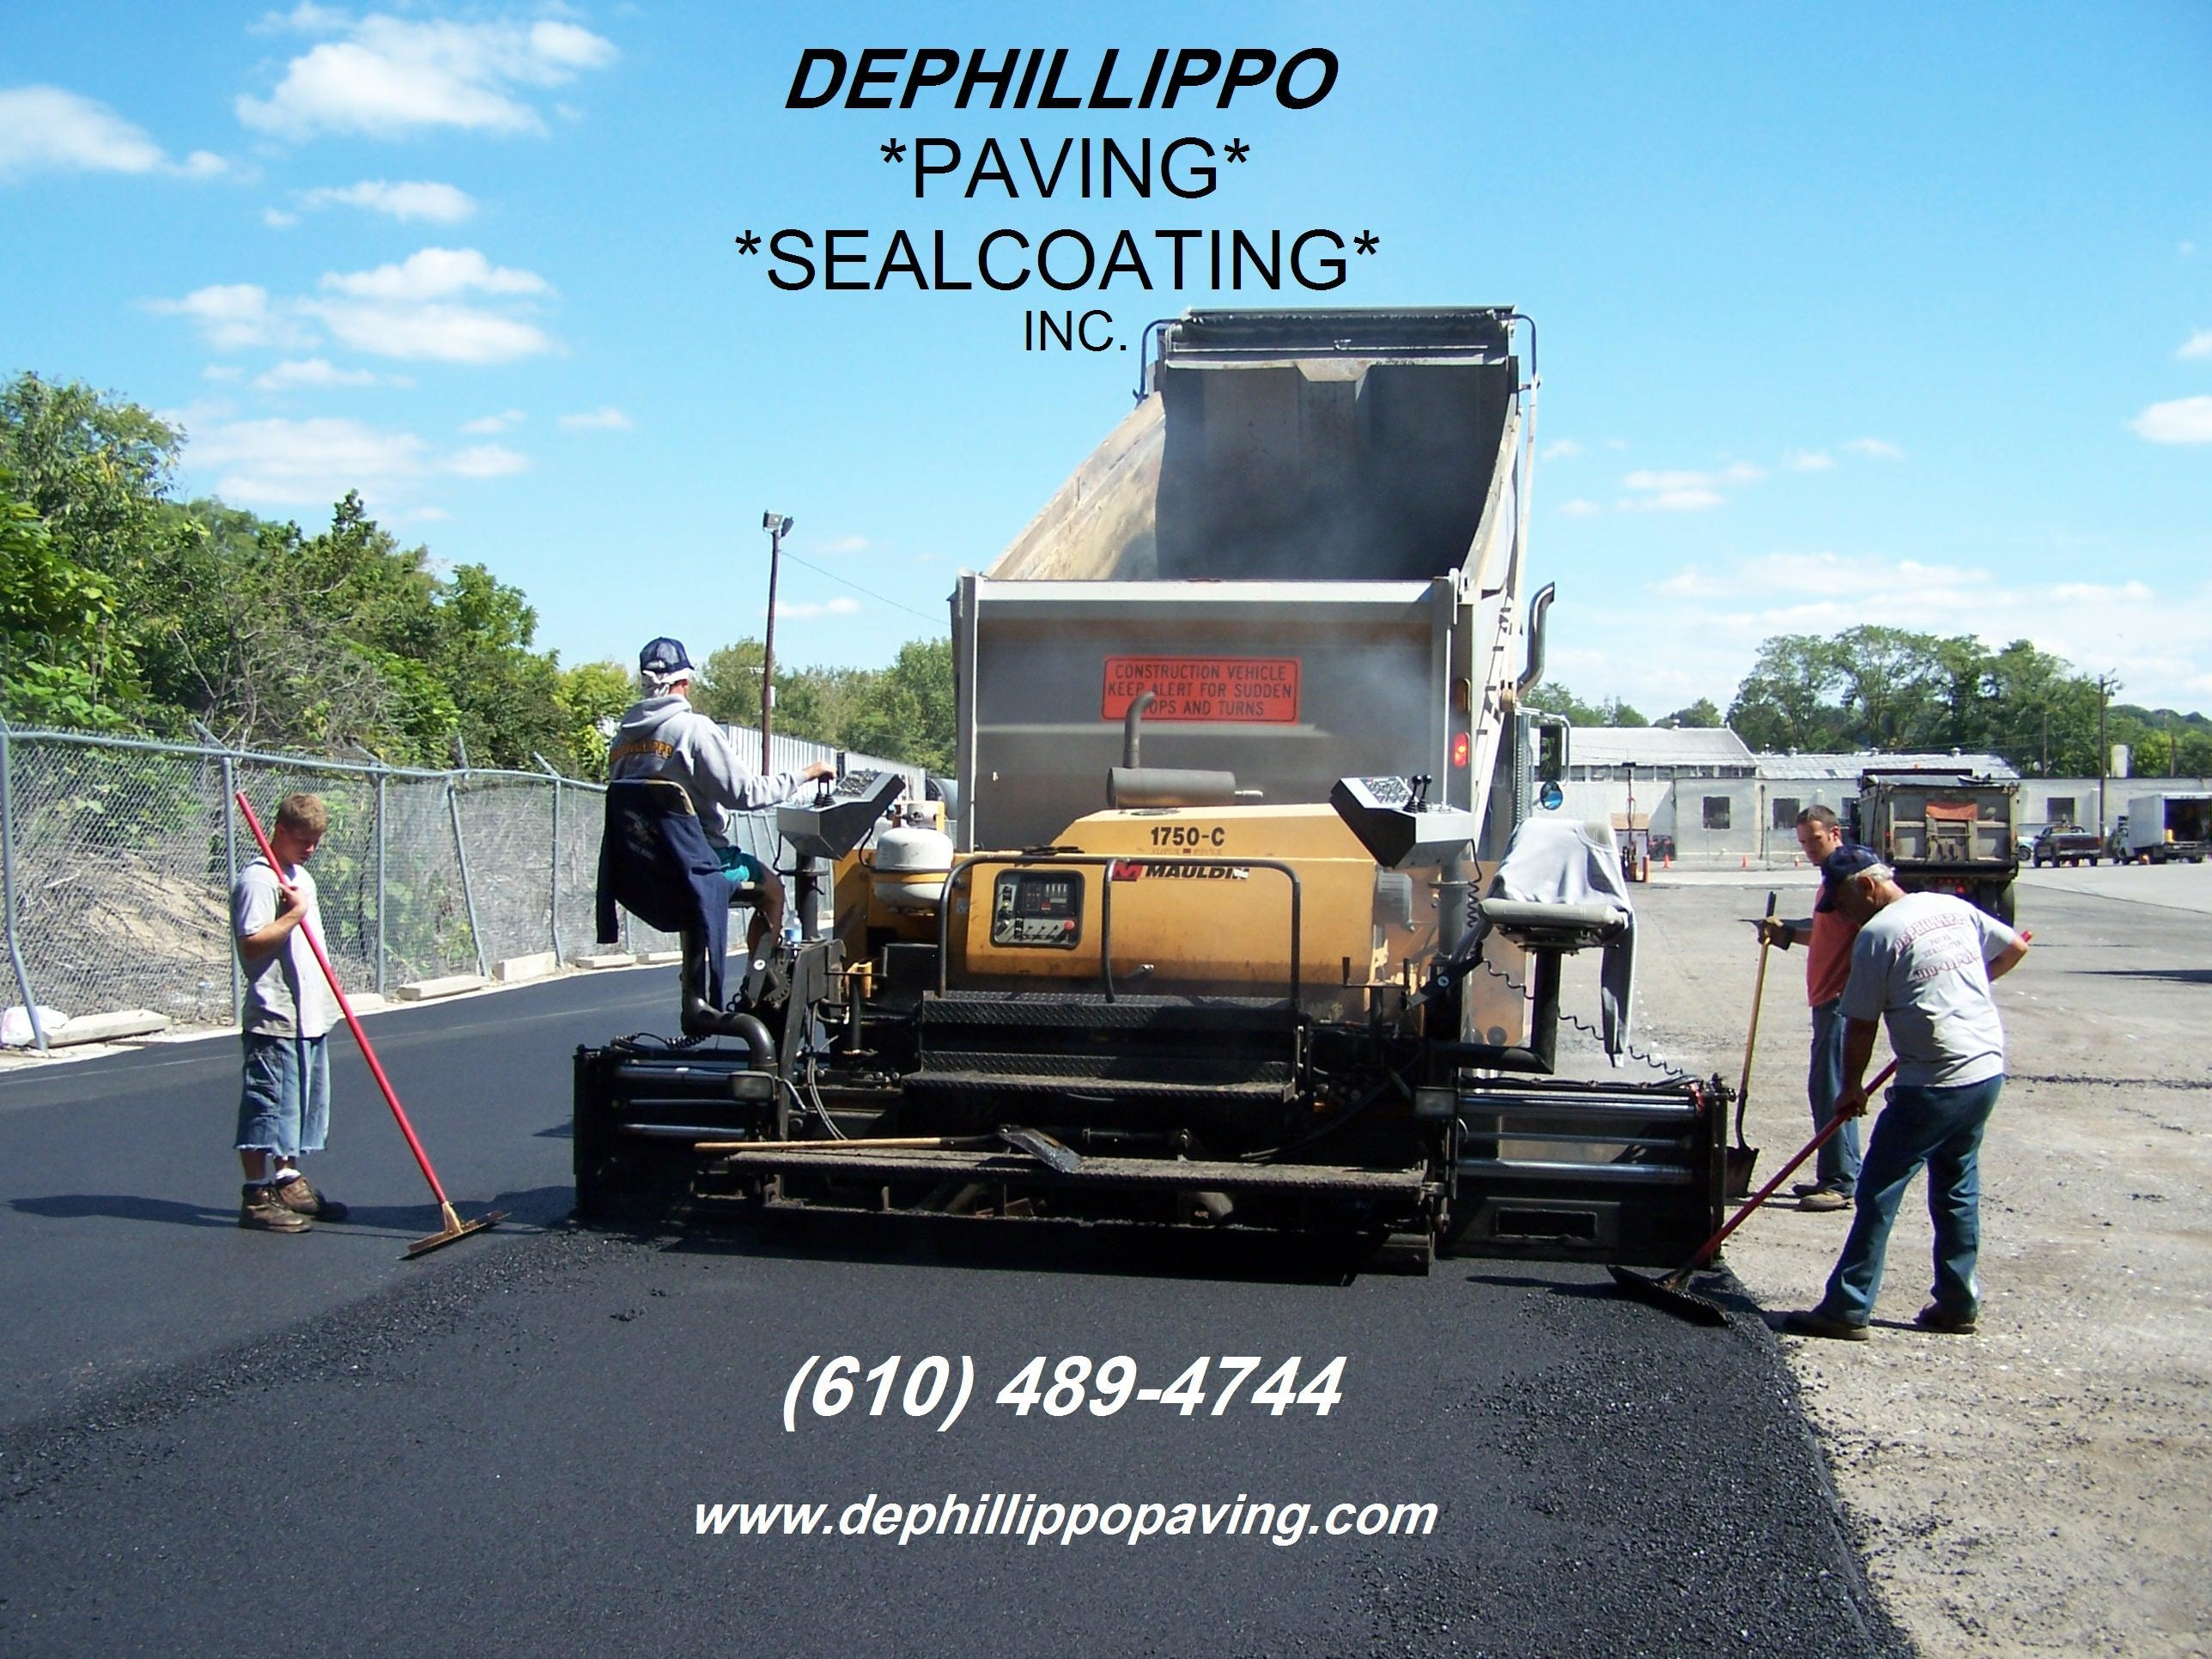 DePhillippo Paving LLC